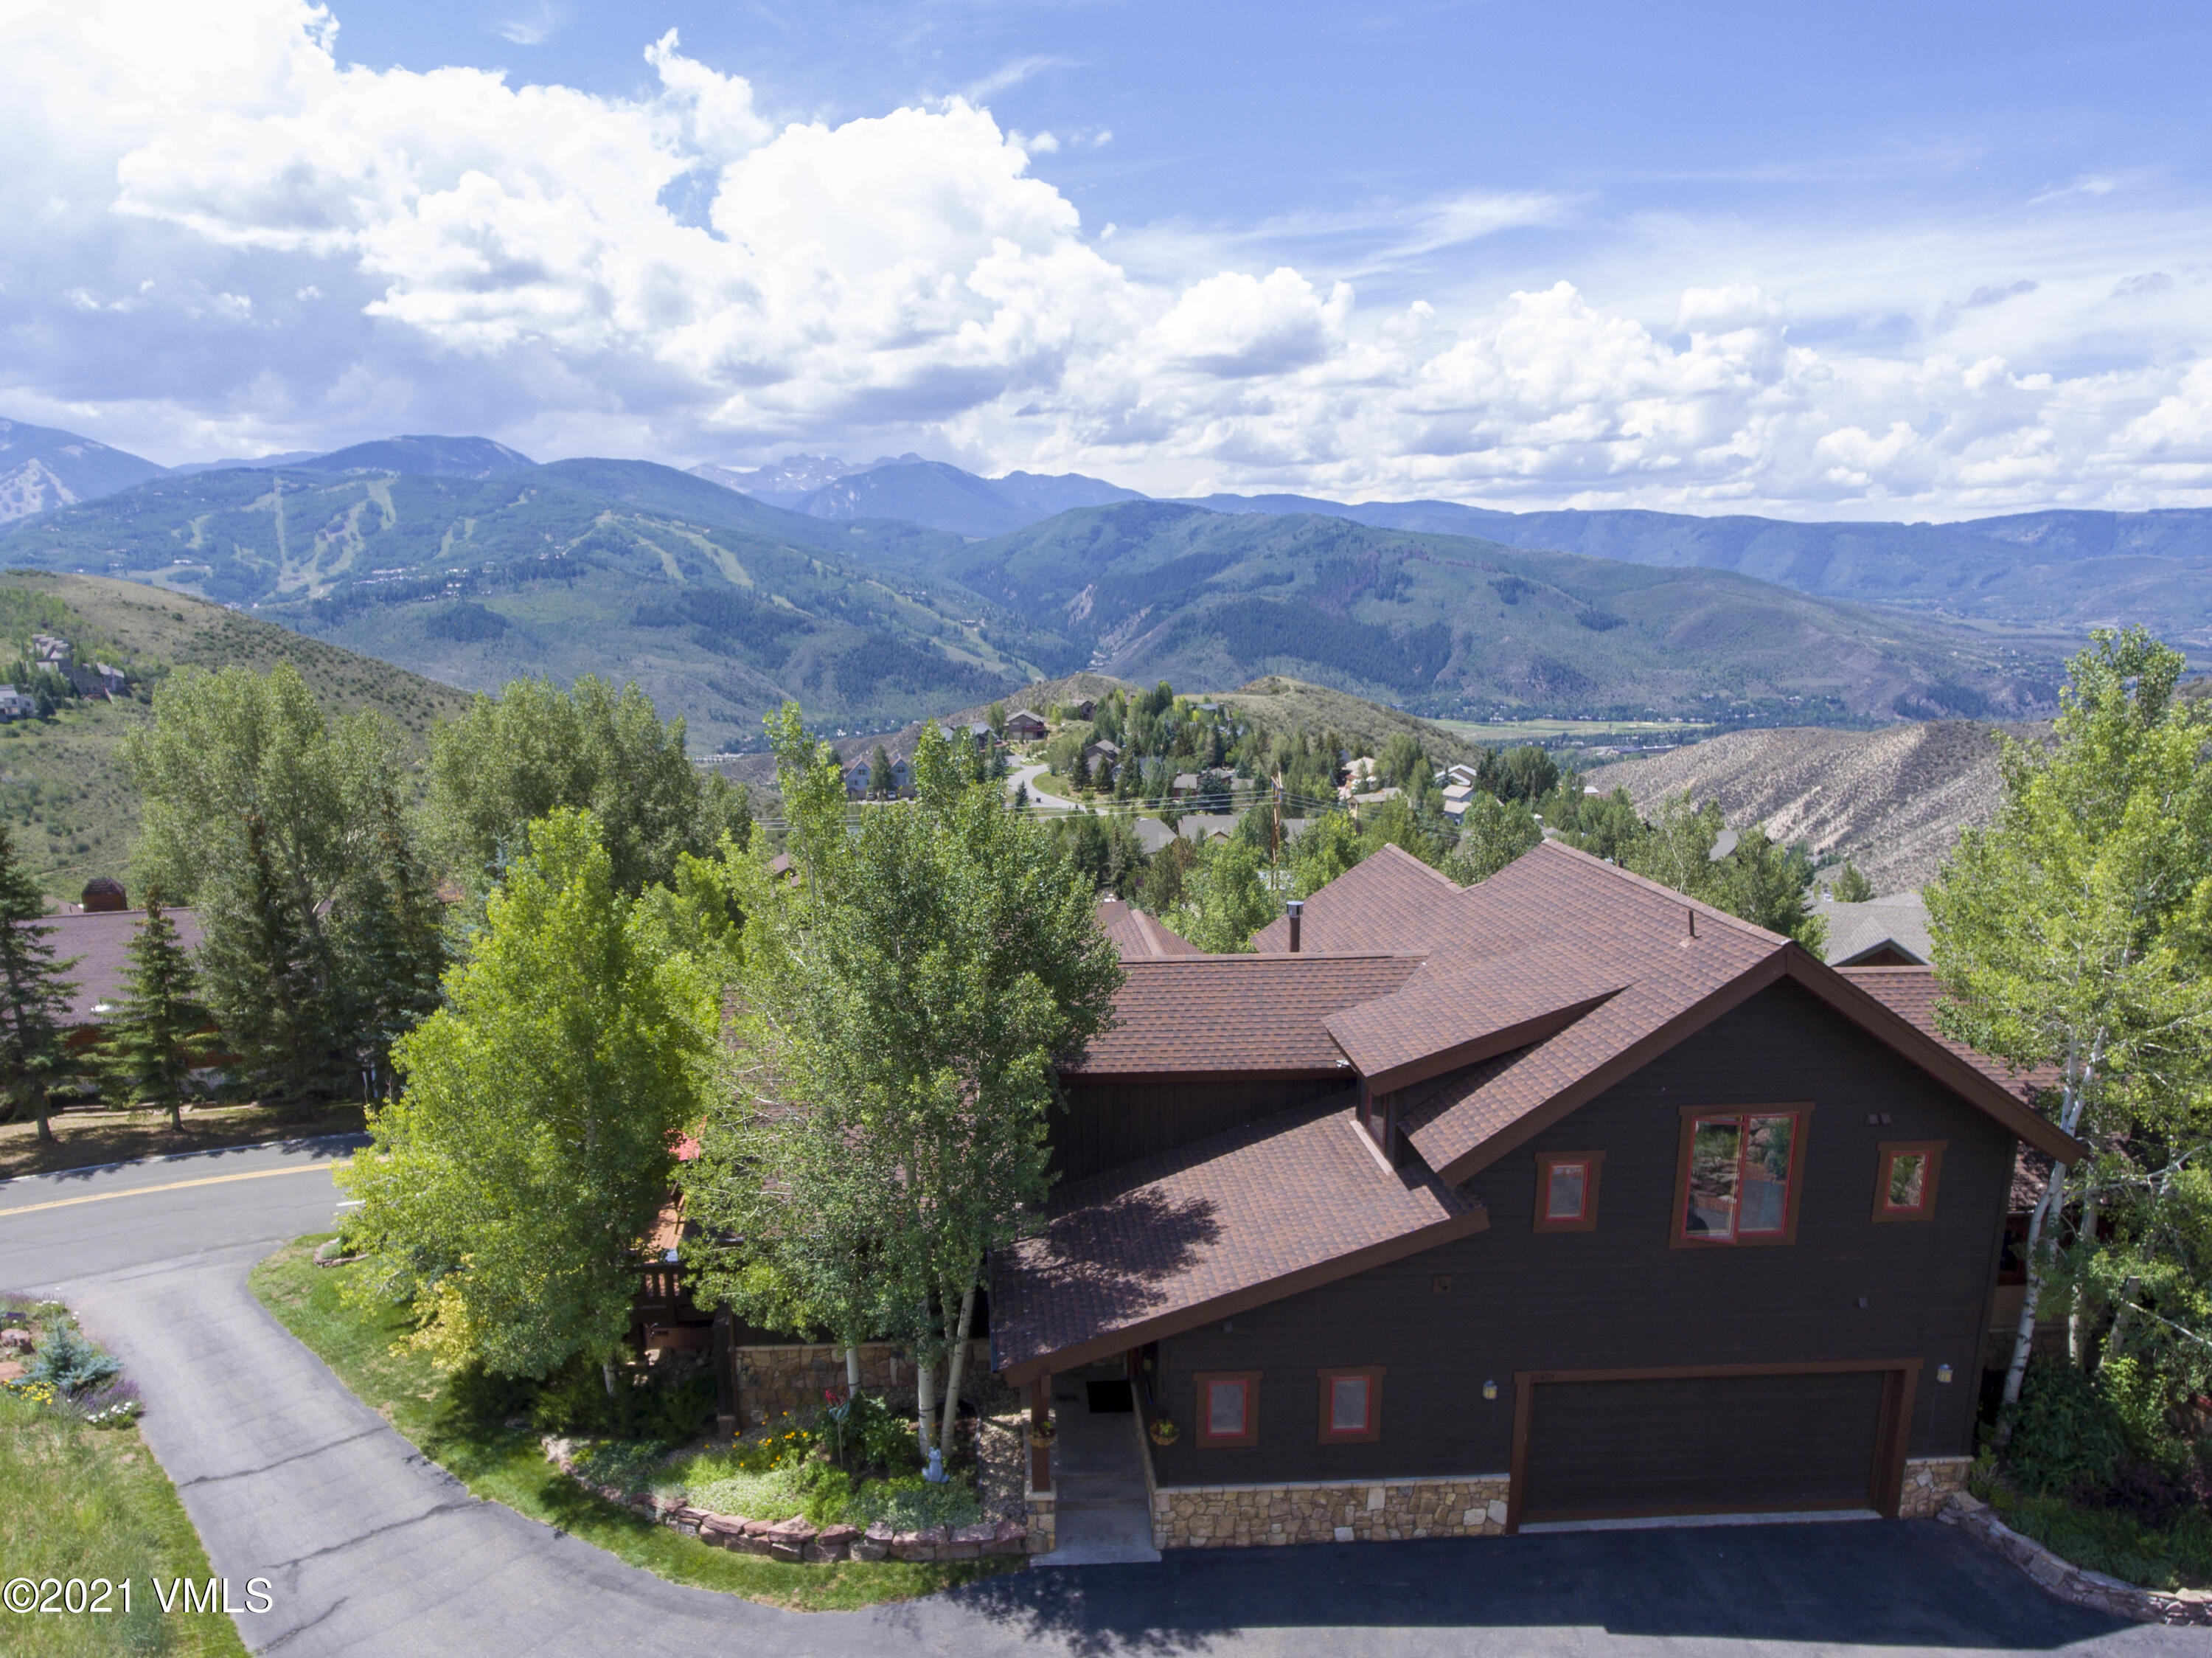 Do not miss the stunning views of Beaver Creek and beyond to Gold Dust peak, part of the Sawatch Mountain Range from this 5-bedroom, 6-bathroom home.  Located on a quiet street in the Wildridge neighborhood of the Vail Valley, the property was built to take advantage of the surrounding mountains.  The vaulted ceilings and large windows on the main level frame your view from the living room, dining room, and kitchen while allowing great natural light.  Step outside to the wrap around deck or backyard and continue to enjoy the views.  The property is unique as it offers three master suites, including a main level master with a private deck.  Two bedrooms on the upper level both with vaulted ceilings.  One is a master suite with views to the south and the other is a very large bedroom with an en suite bathroom.  The lower level has a second living room, another master suite, and a fifth bedroom.  A large projector screen TV and pool table in the lower level are part of the sale making this a great area for entertaining and relaxing.  The fun does not stop inside, as the walk-out lower level gives access to the backyard and hot tub area.  There is extra storage and an oversized two garage.  The home is within walking distance to the Wildridge pocket park, dog park, and the Avon Preserve offering hiking and biking trails.  The Wildridge neighborhood and this home give owners easy access to the White River National Forest for expanded year-round outdoor activities.Recent updates include new carpet throughout, refinished hardwood floors, new paint, and new Fisher & Paykel appliances.  Landscaping updates have been done as well.